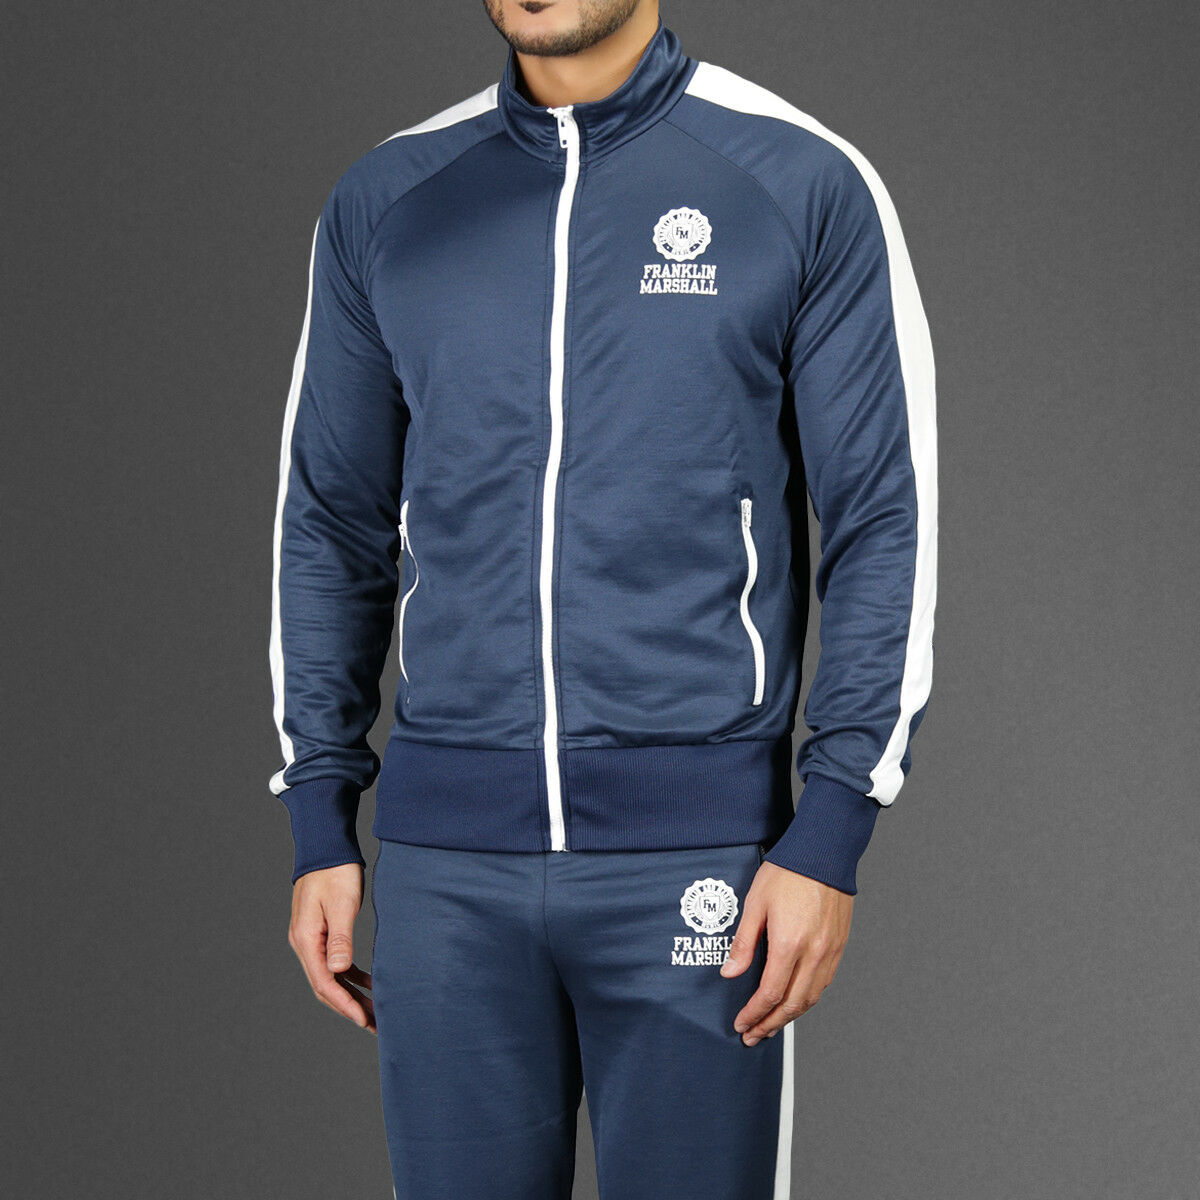 Franklin Marshall Mens Retro Tennis Tracksuit Jacket & Joggers Navy Weiß Medium